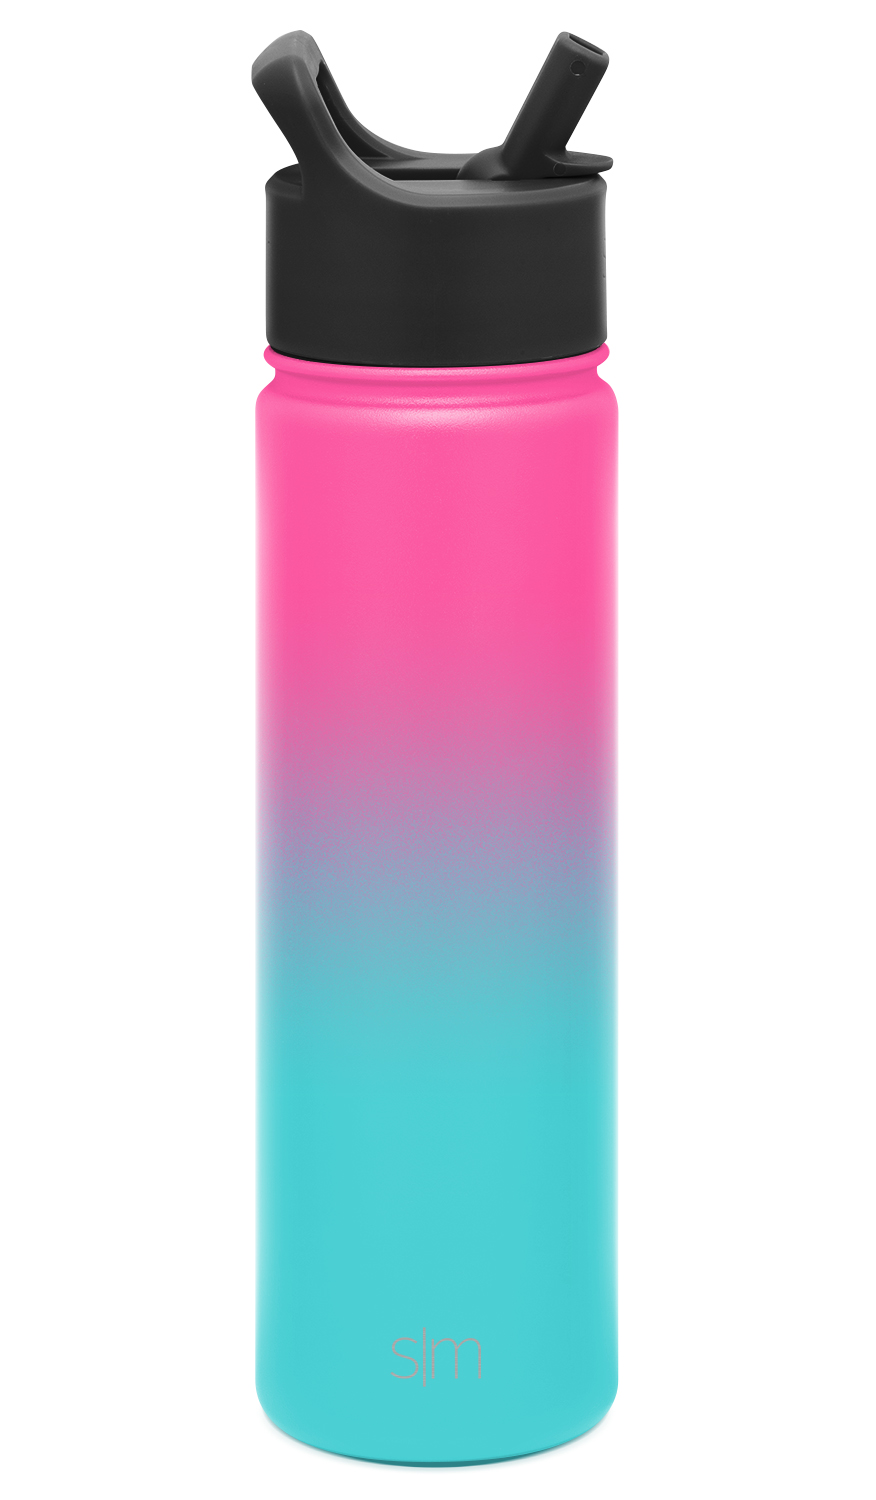 Simple-Modern-Summit-Water-Bottle-with-Straw-Lid-Vacuum-Insulated-Kid-039-s-Cup thumbnail 19